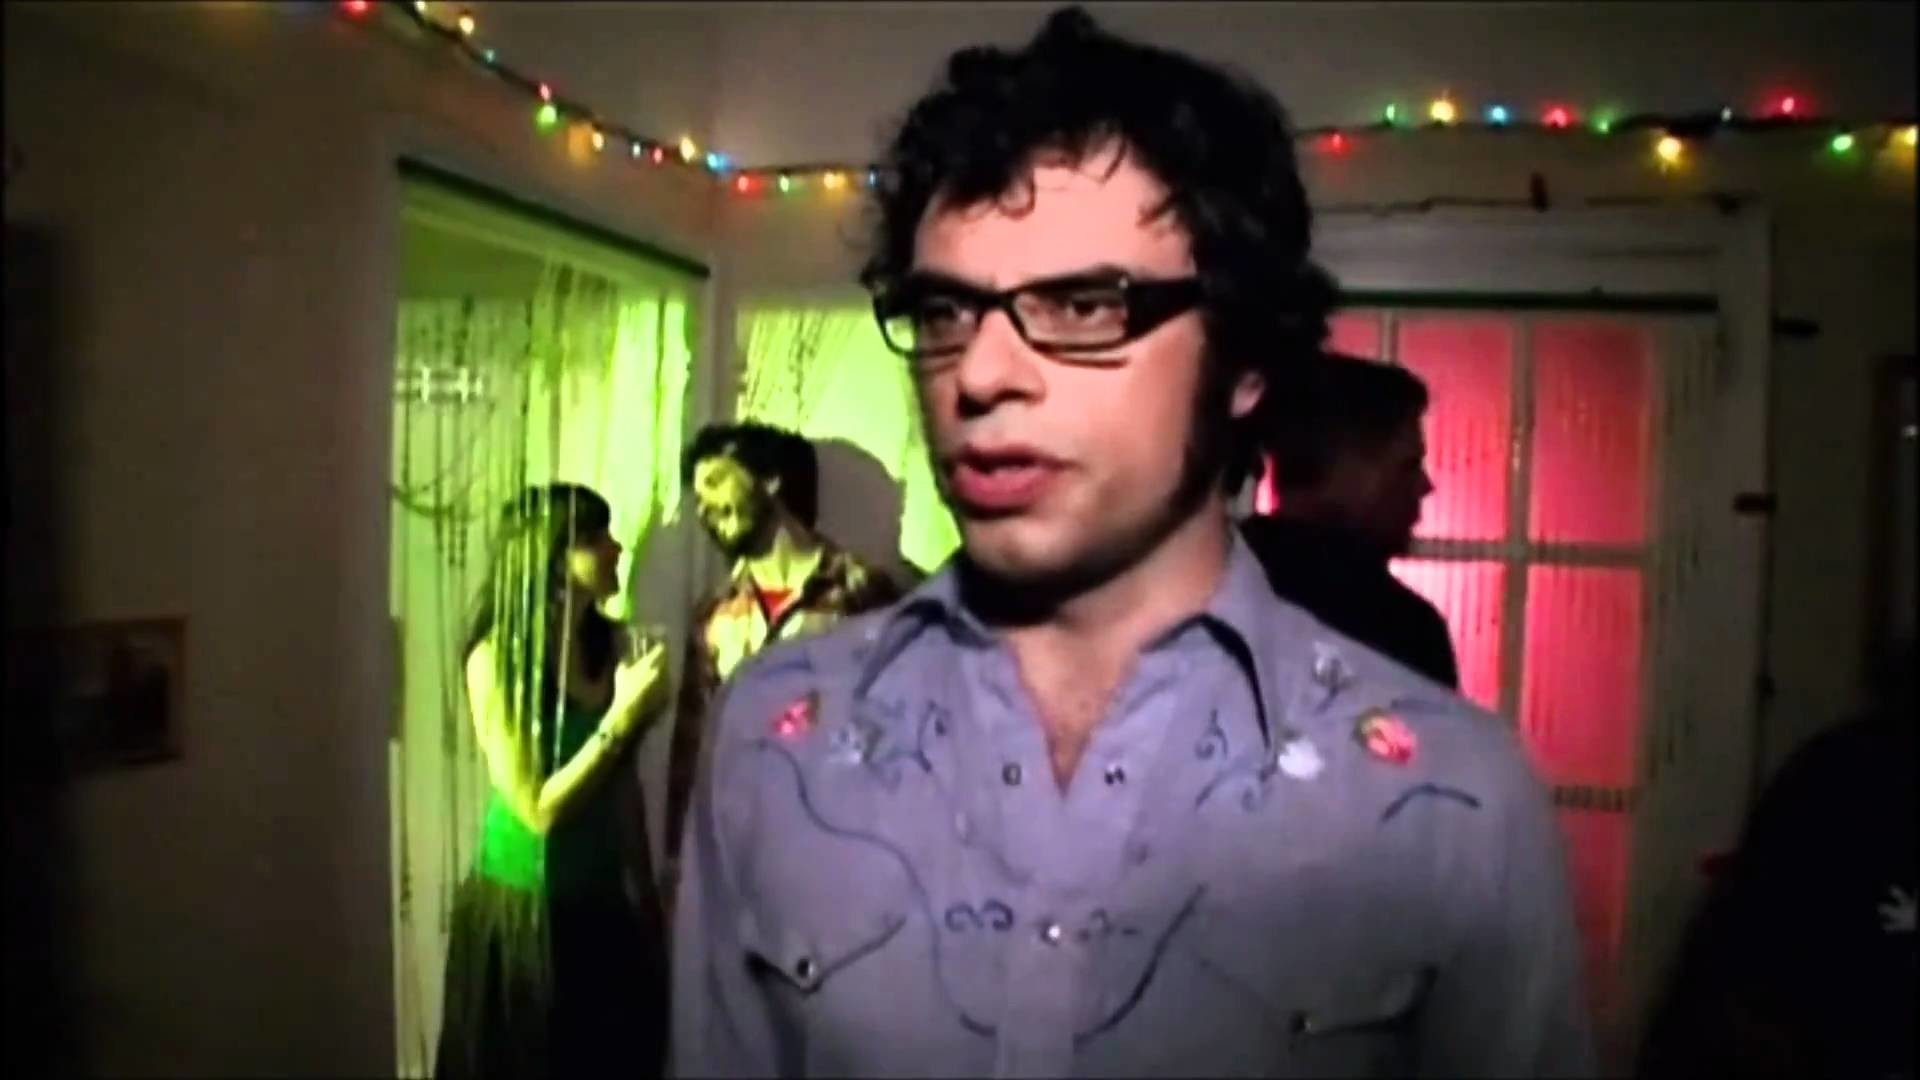 1920x1080 10 years ago today, Flight of the Conchords premiered on HBO - from S01E01,